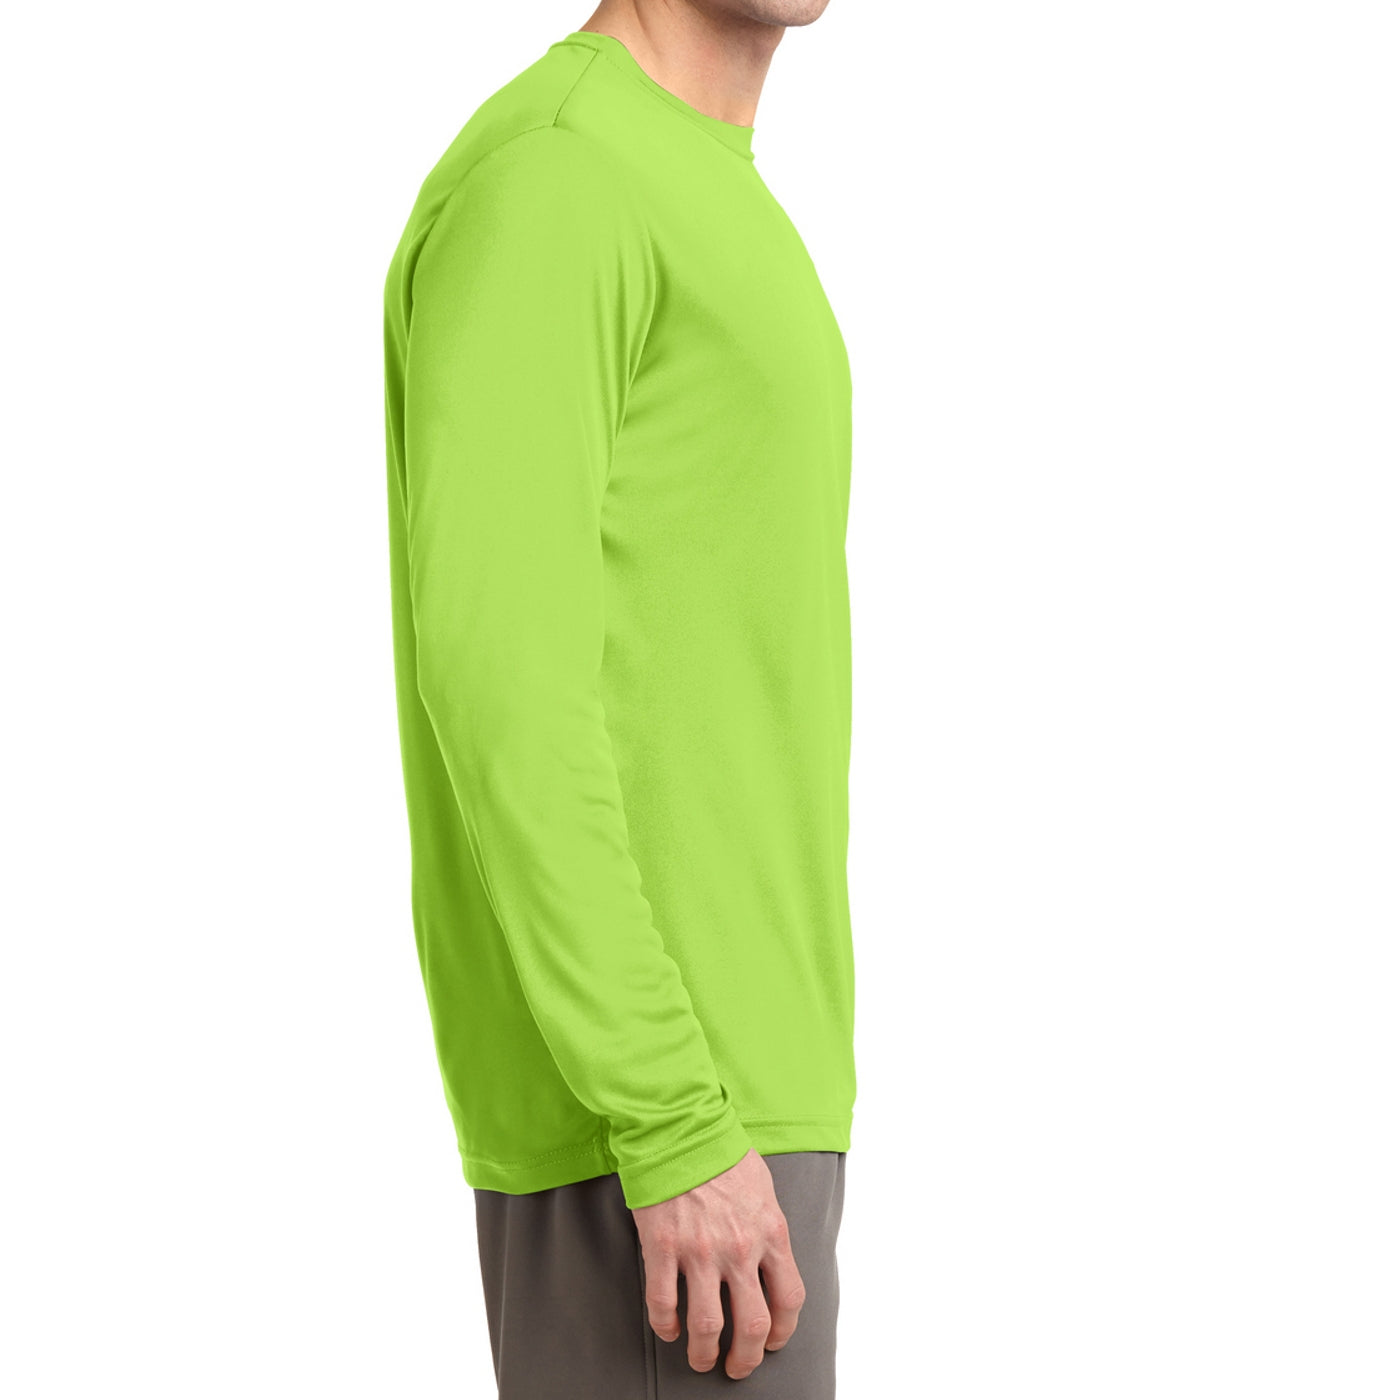 Men's Long Sleeve PosiCharge Competitor Tee - Lime Shock